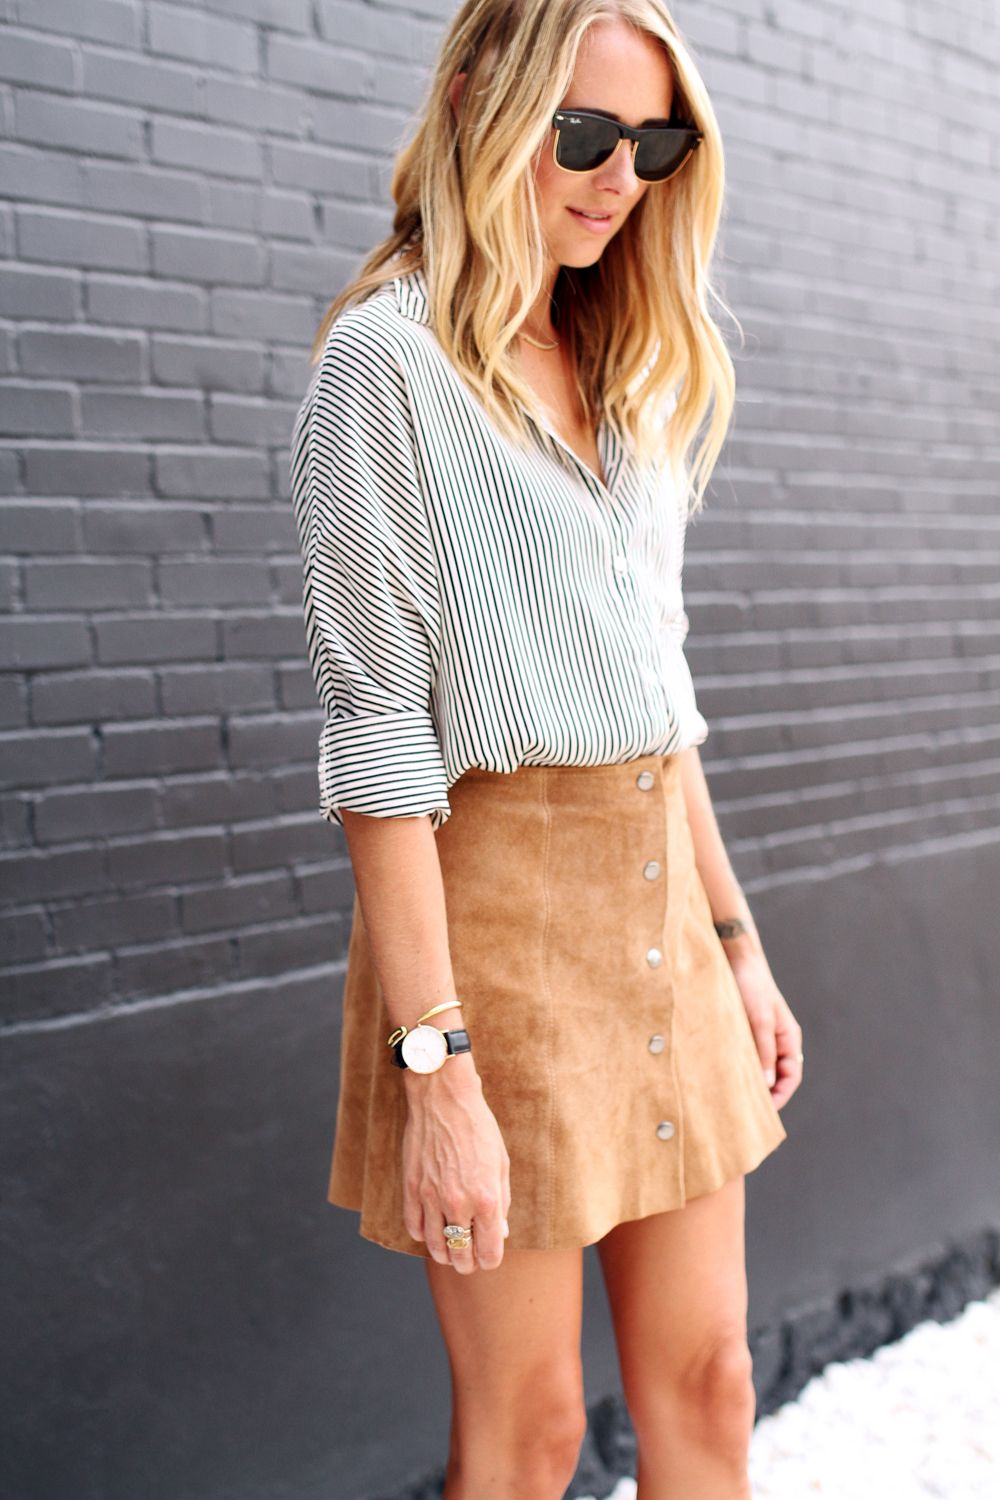 fashion-jackson-rayban-sunglasses-topshop-tan-suede-button-front ...